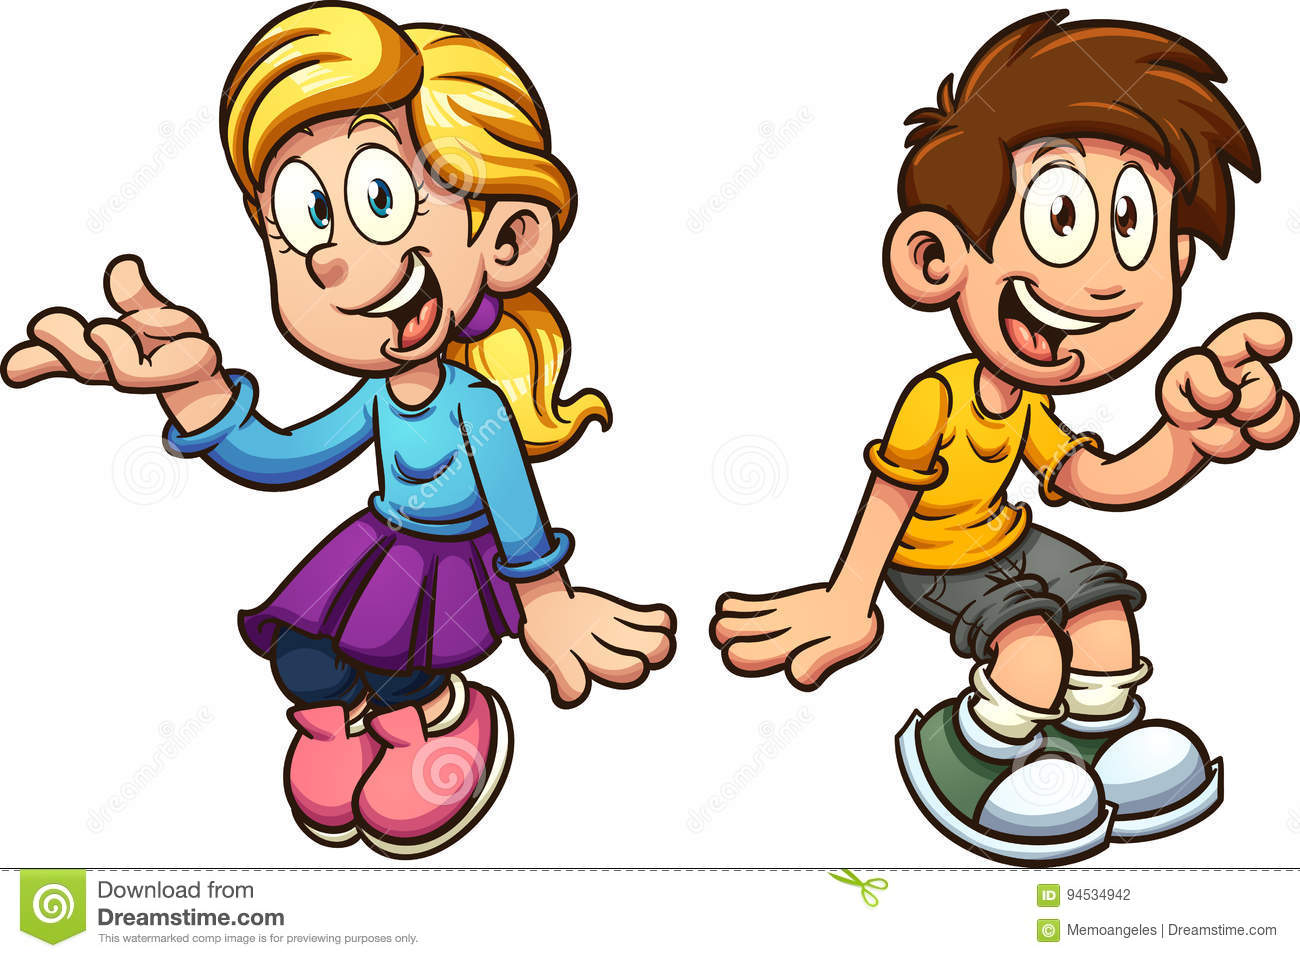 Boy and girl sitting stock vector. Illustration of sitting.